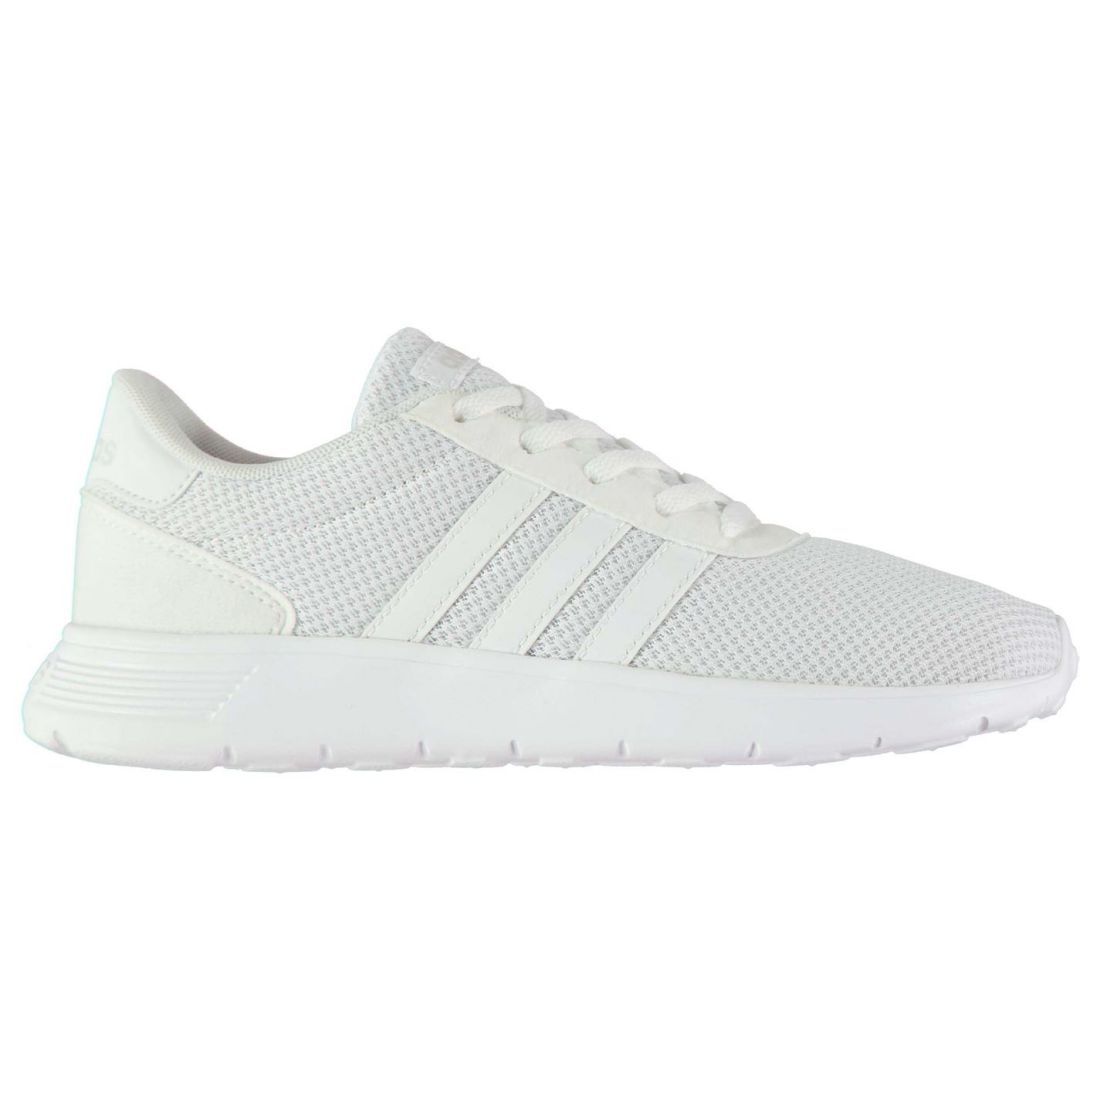 hot sale online 4816b 65084 Shoes adidas Lite Racer K Ladies Junior Trainers Running Sho